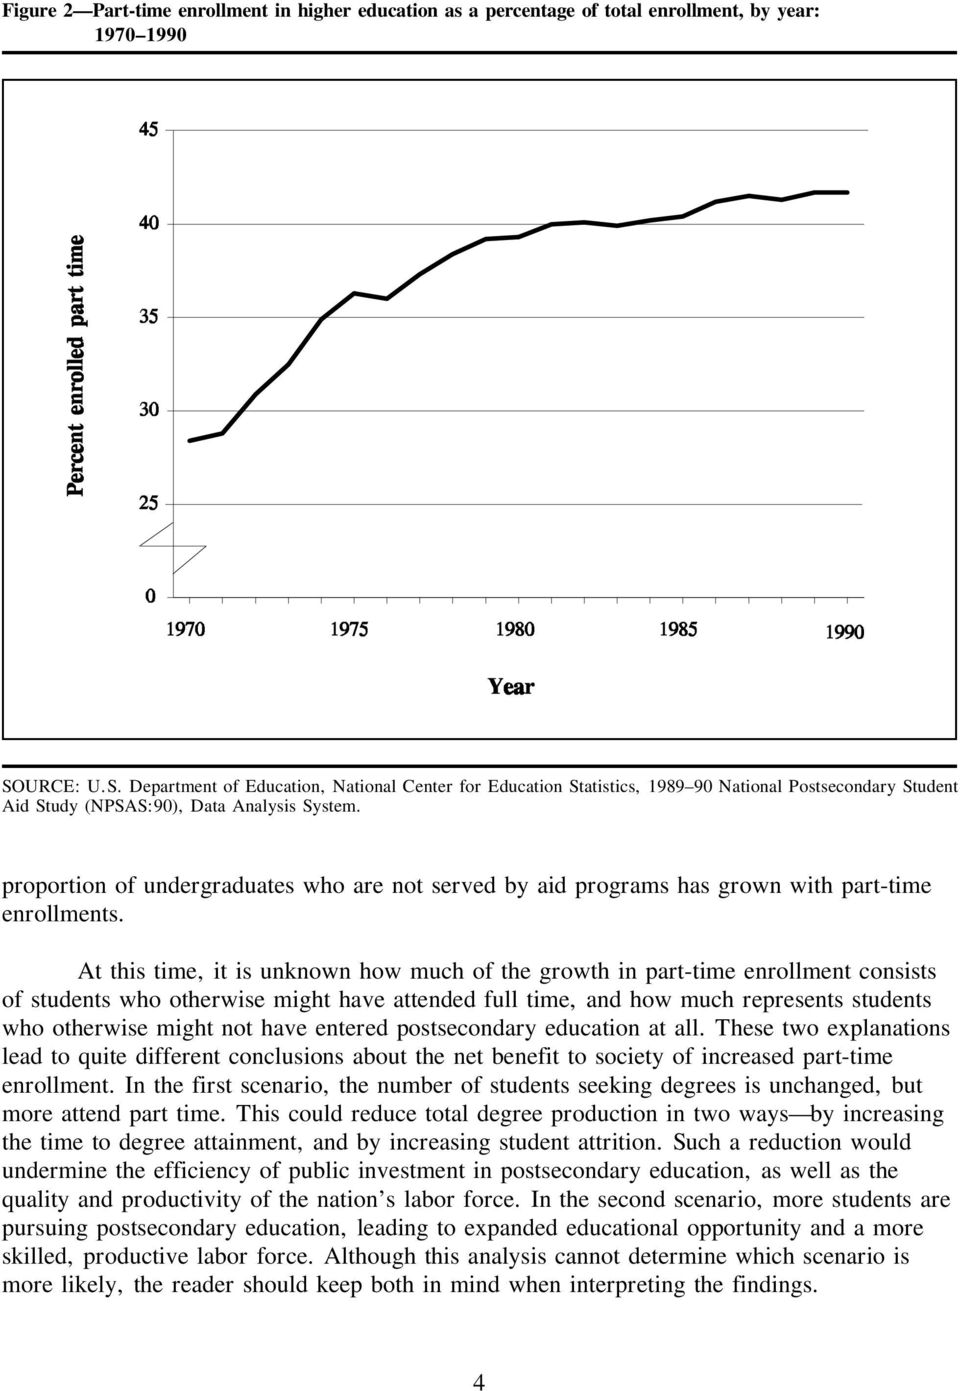 proportion of undergraduates who are not served by aid programs has grown with part-time enrollments.